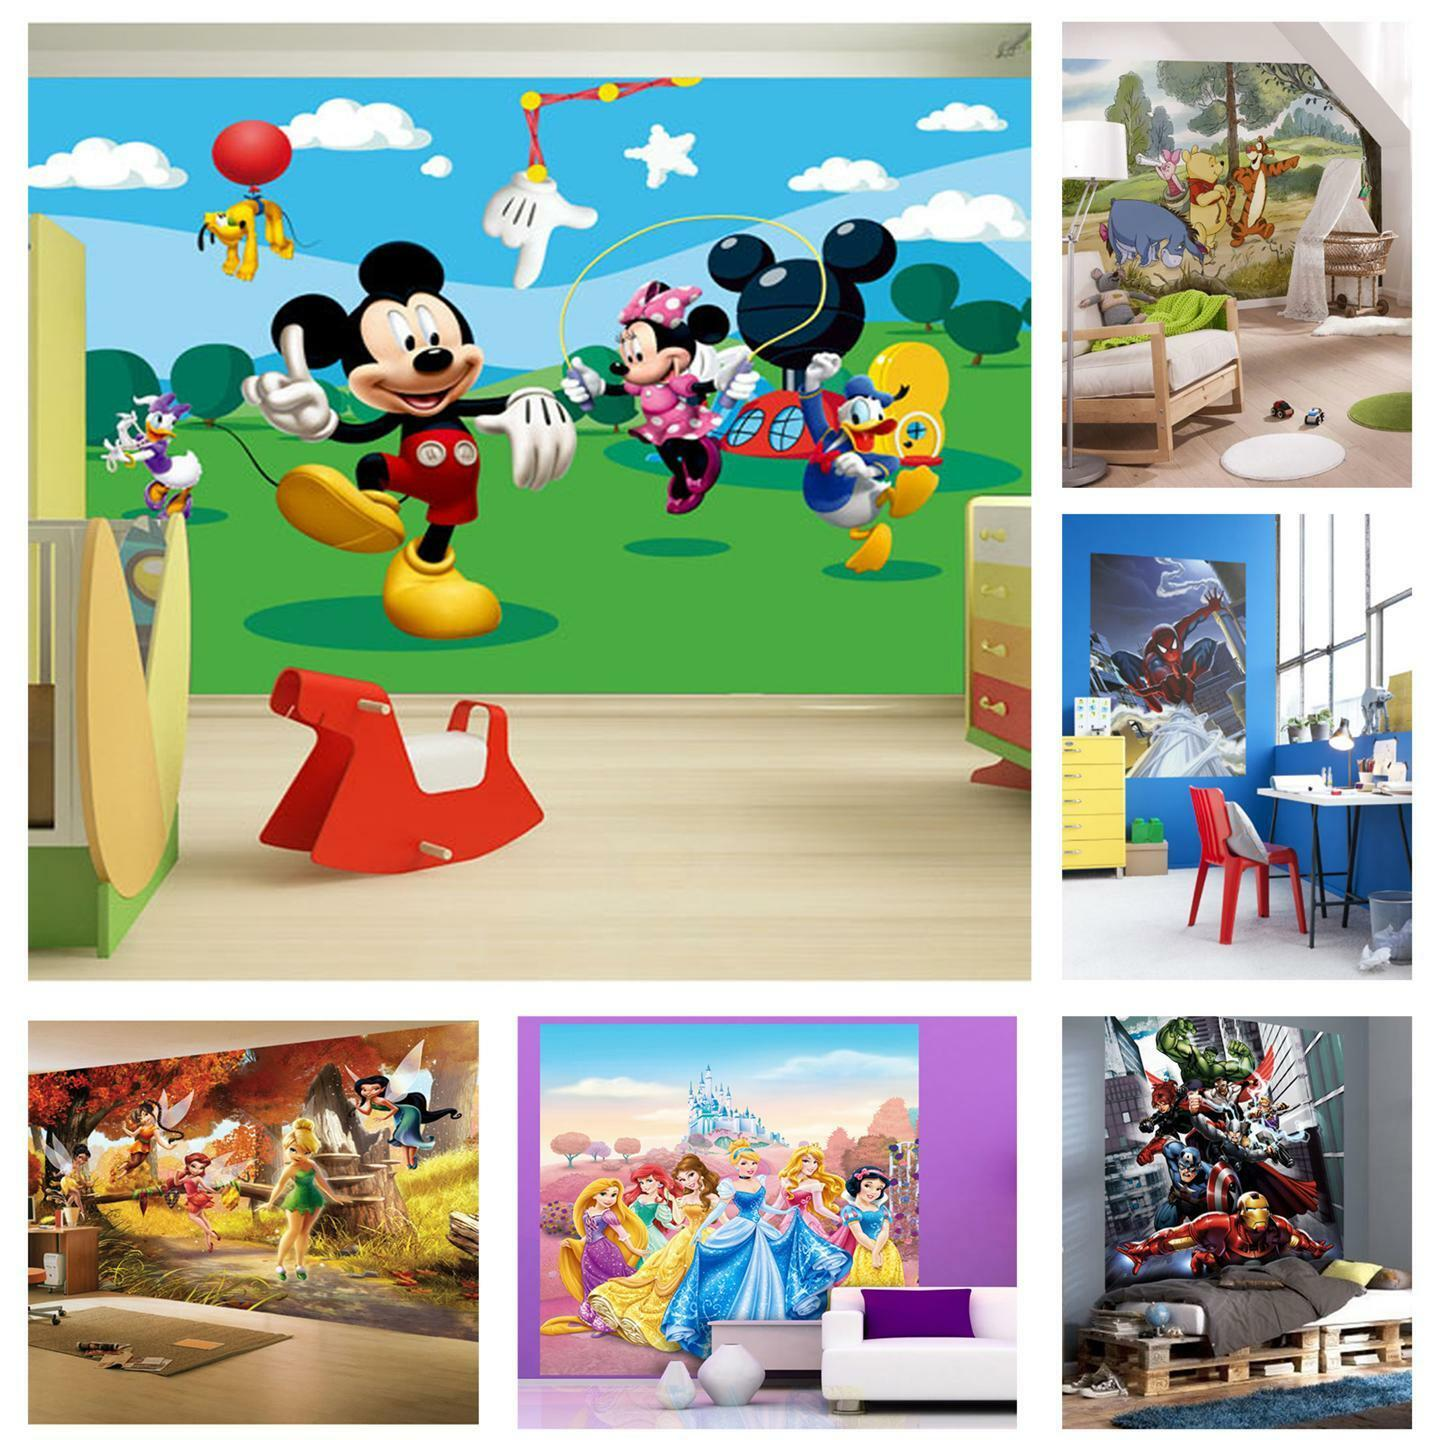 Childrens Bedroom Disney Character Wallpaper Wall Mural Free Delivery Ebay